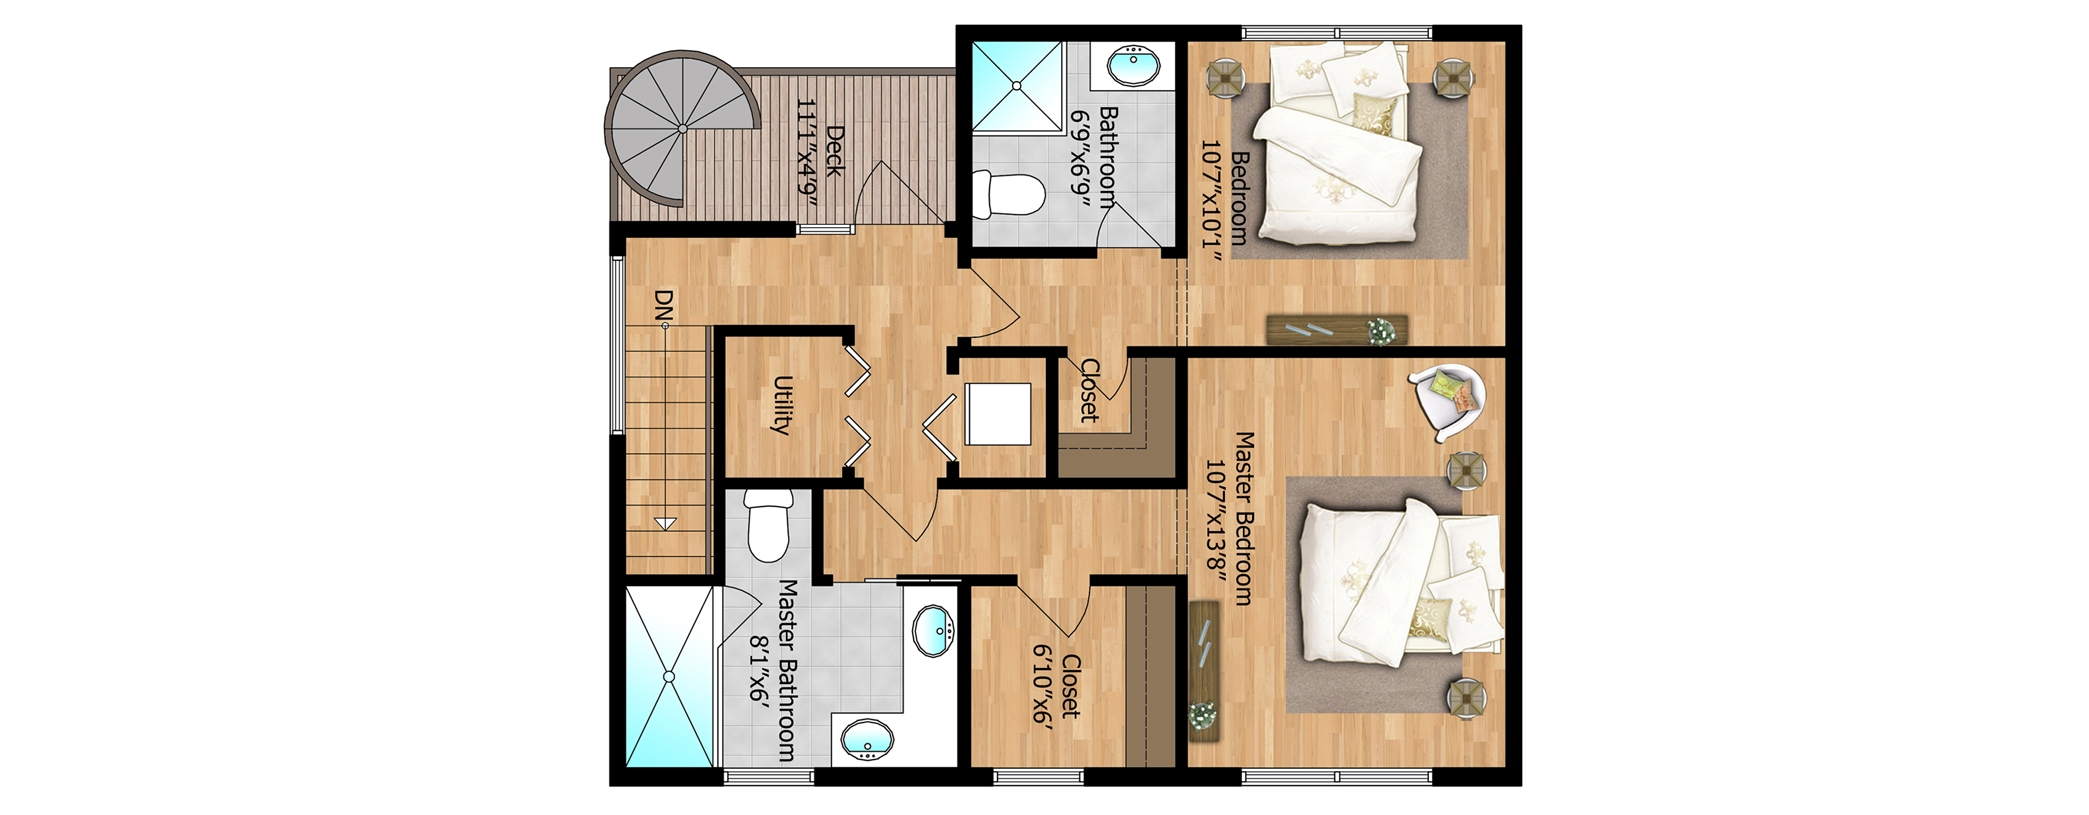 3rd Floor - Unit 2 Bedrooms